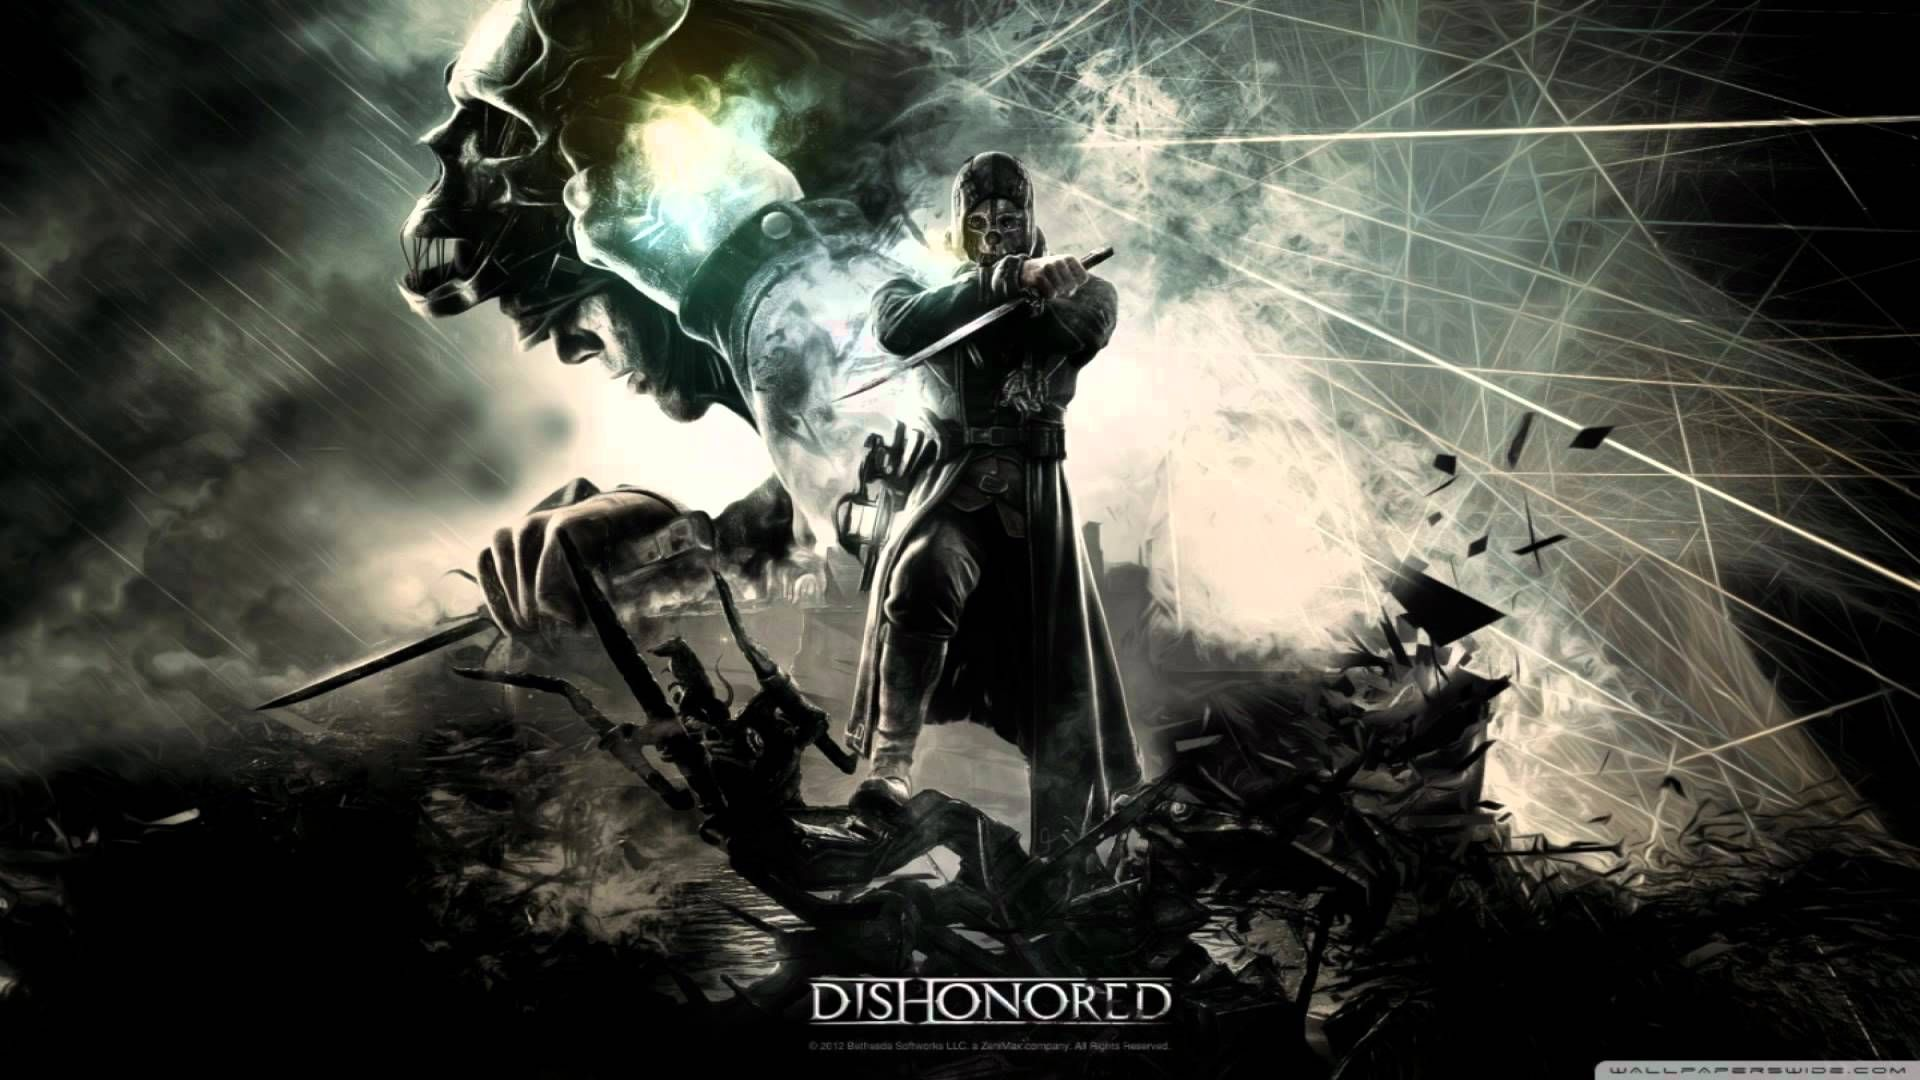 Honor For All Jon Licht And Daniel Licht Dishonored Hd Wallpaper Dishonored Pc